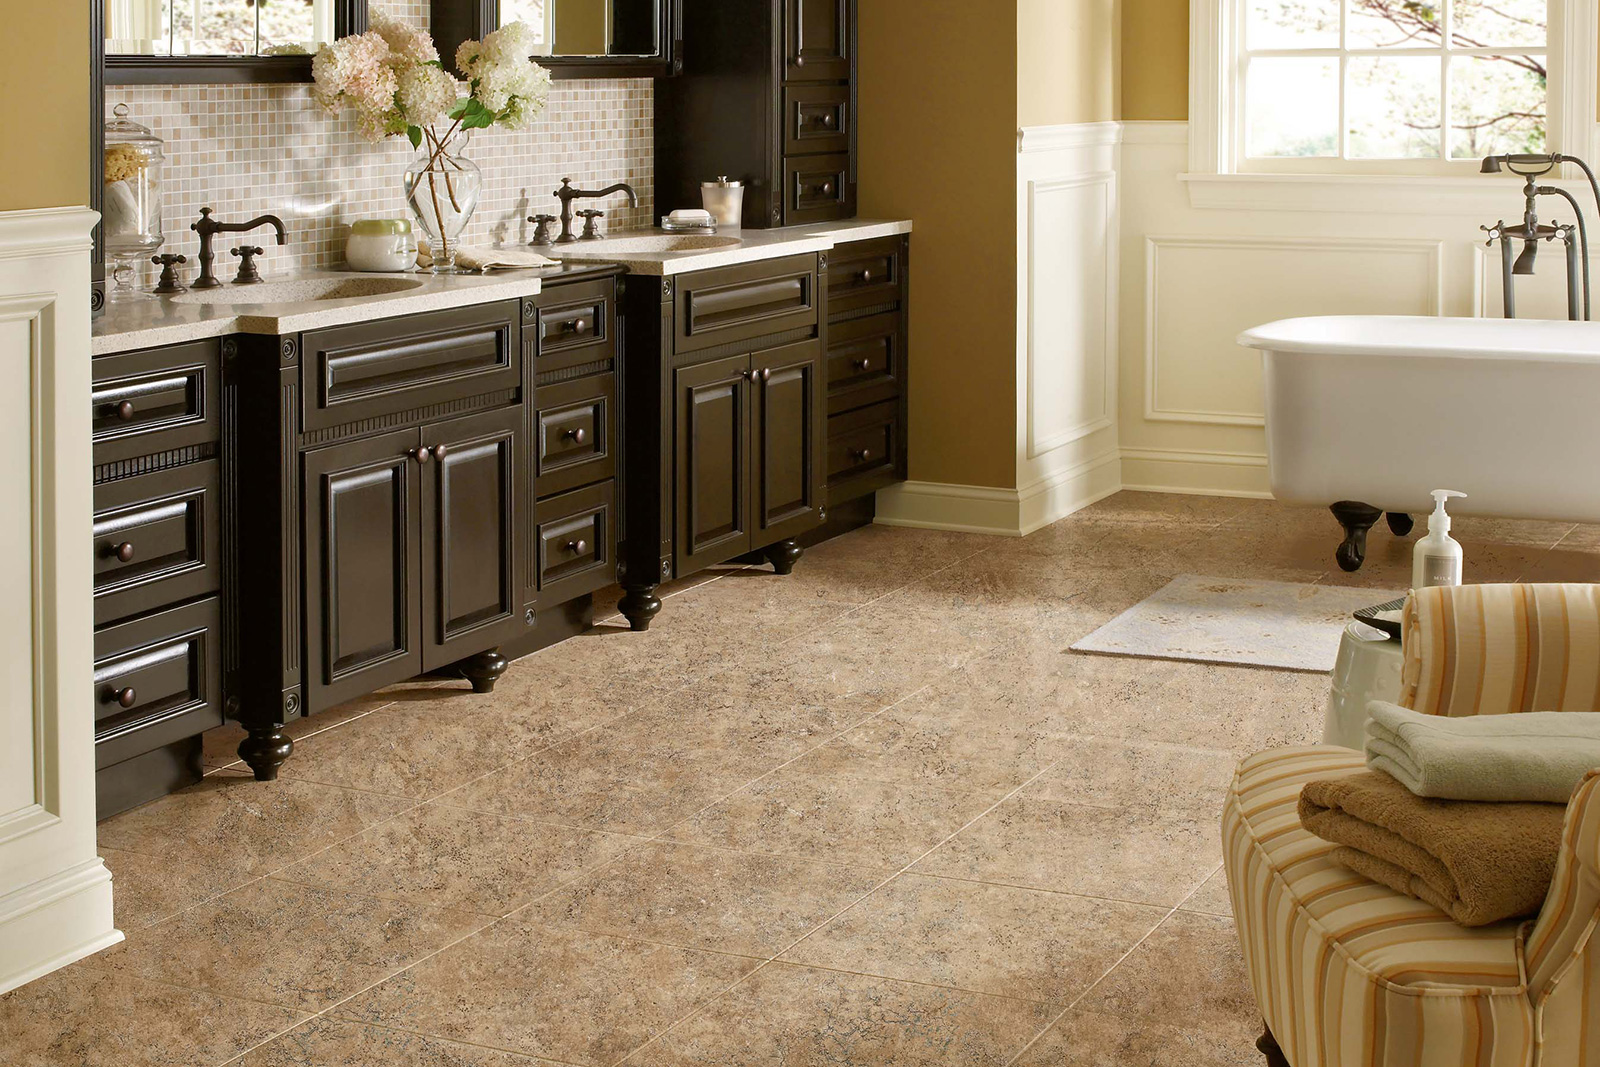 Non Slip Flooring For Kitchens Bathroom Flooring Bathroom Flooring Options Houselogic Bathrooms